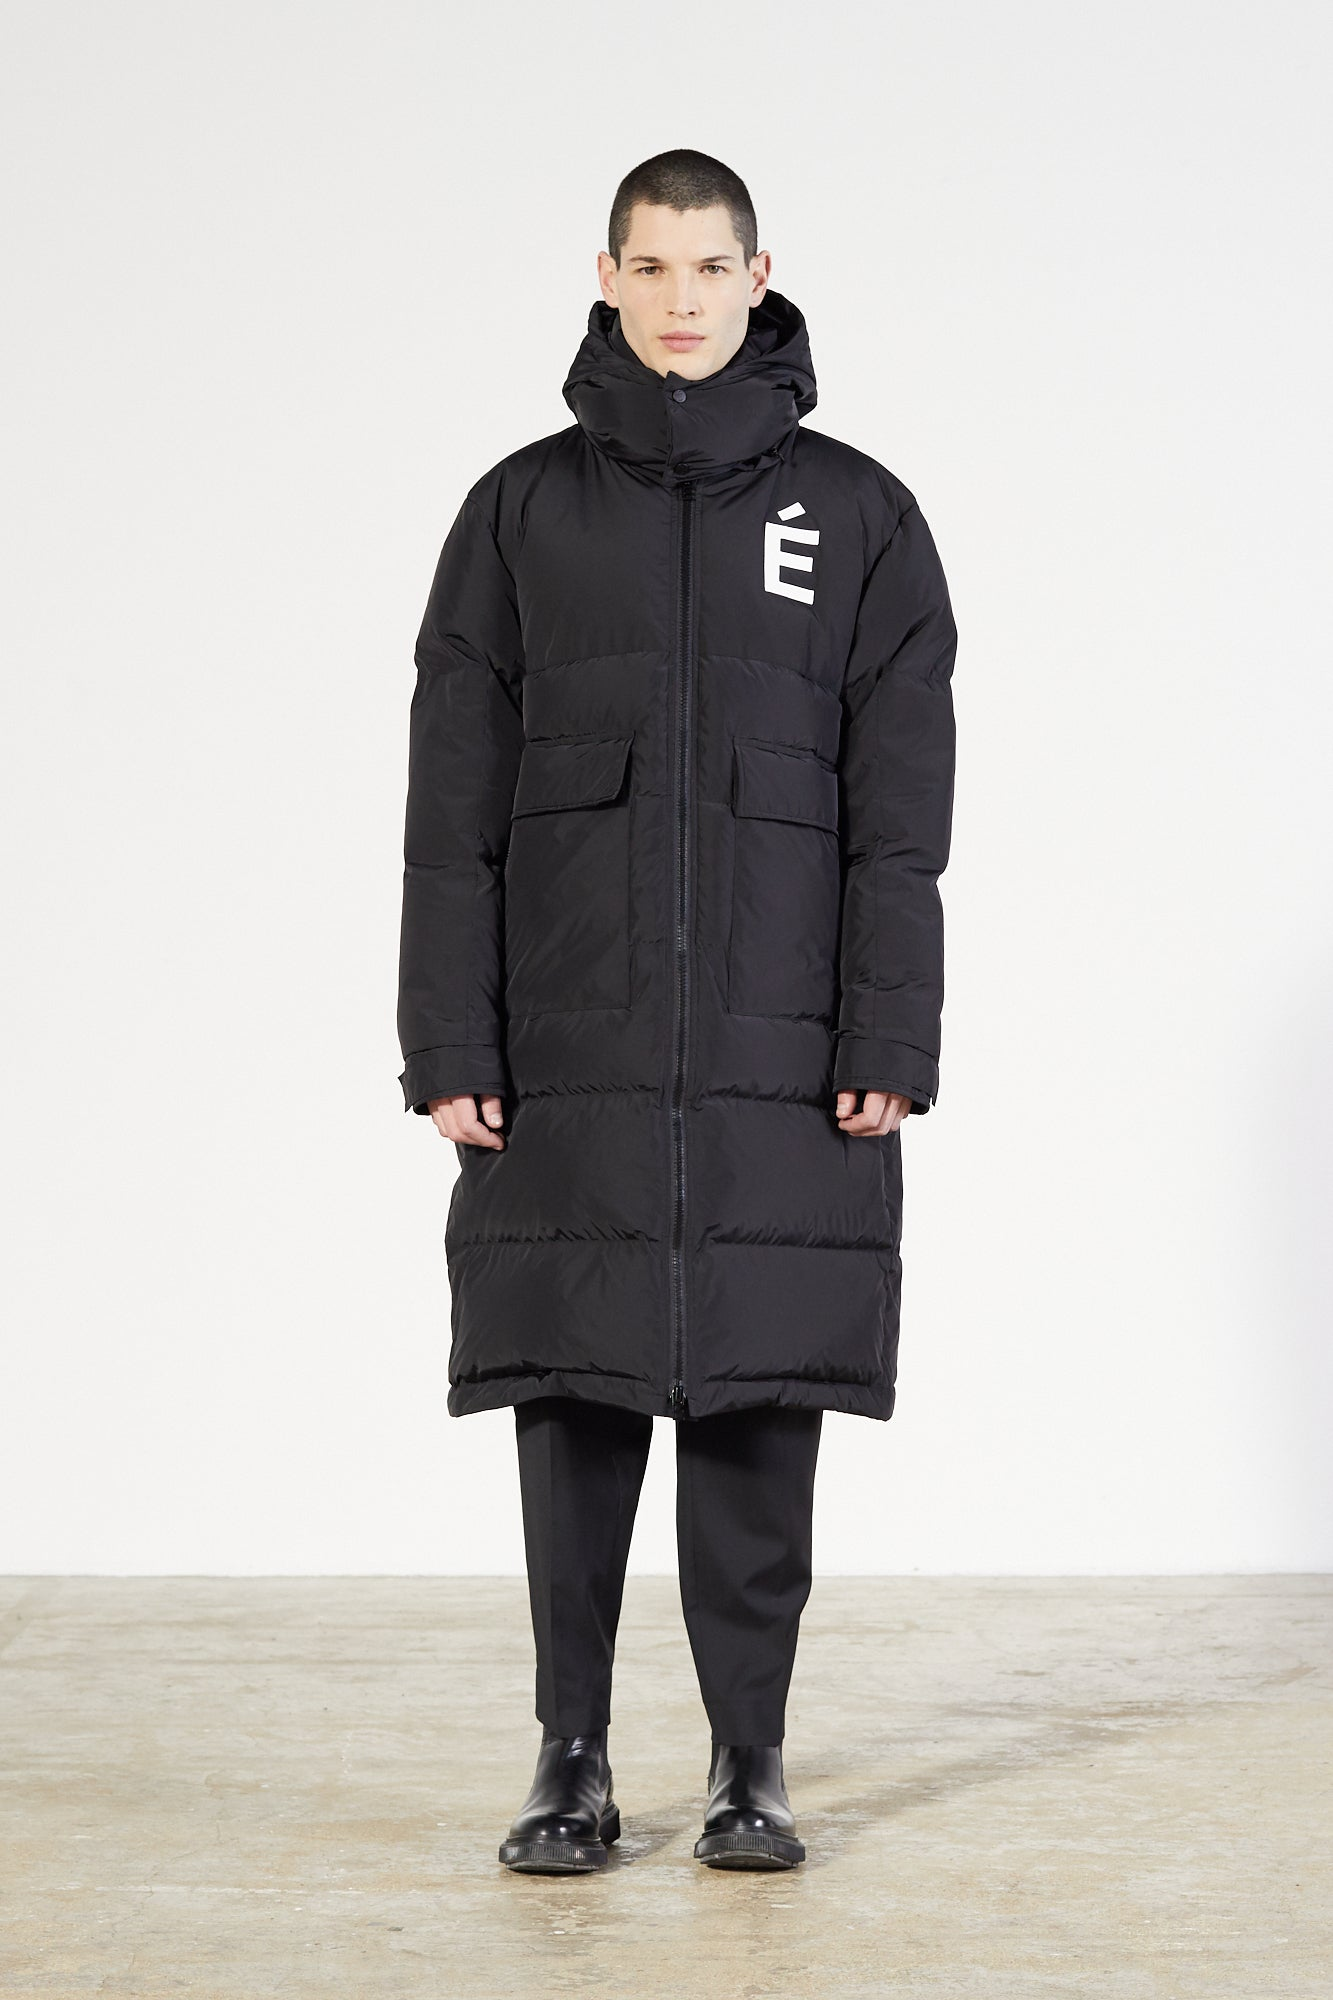 Études Game Patch Black Coat 1